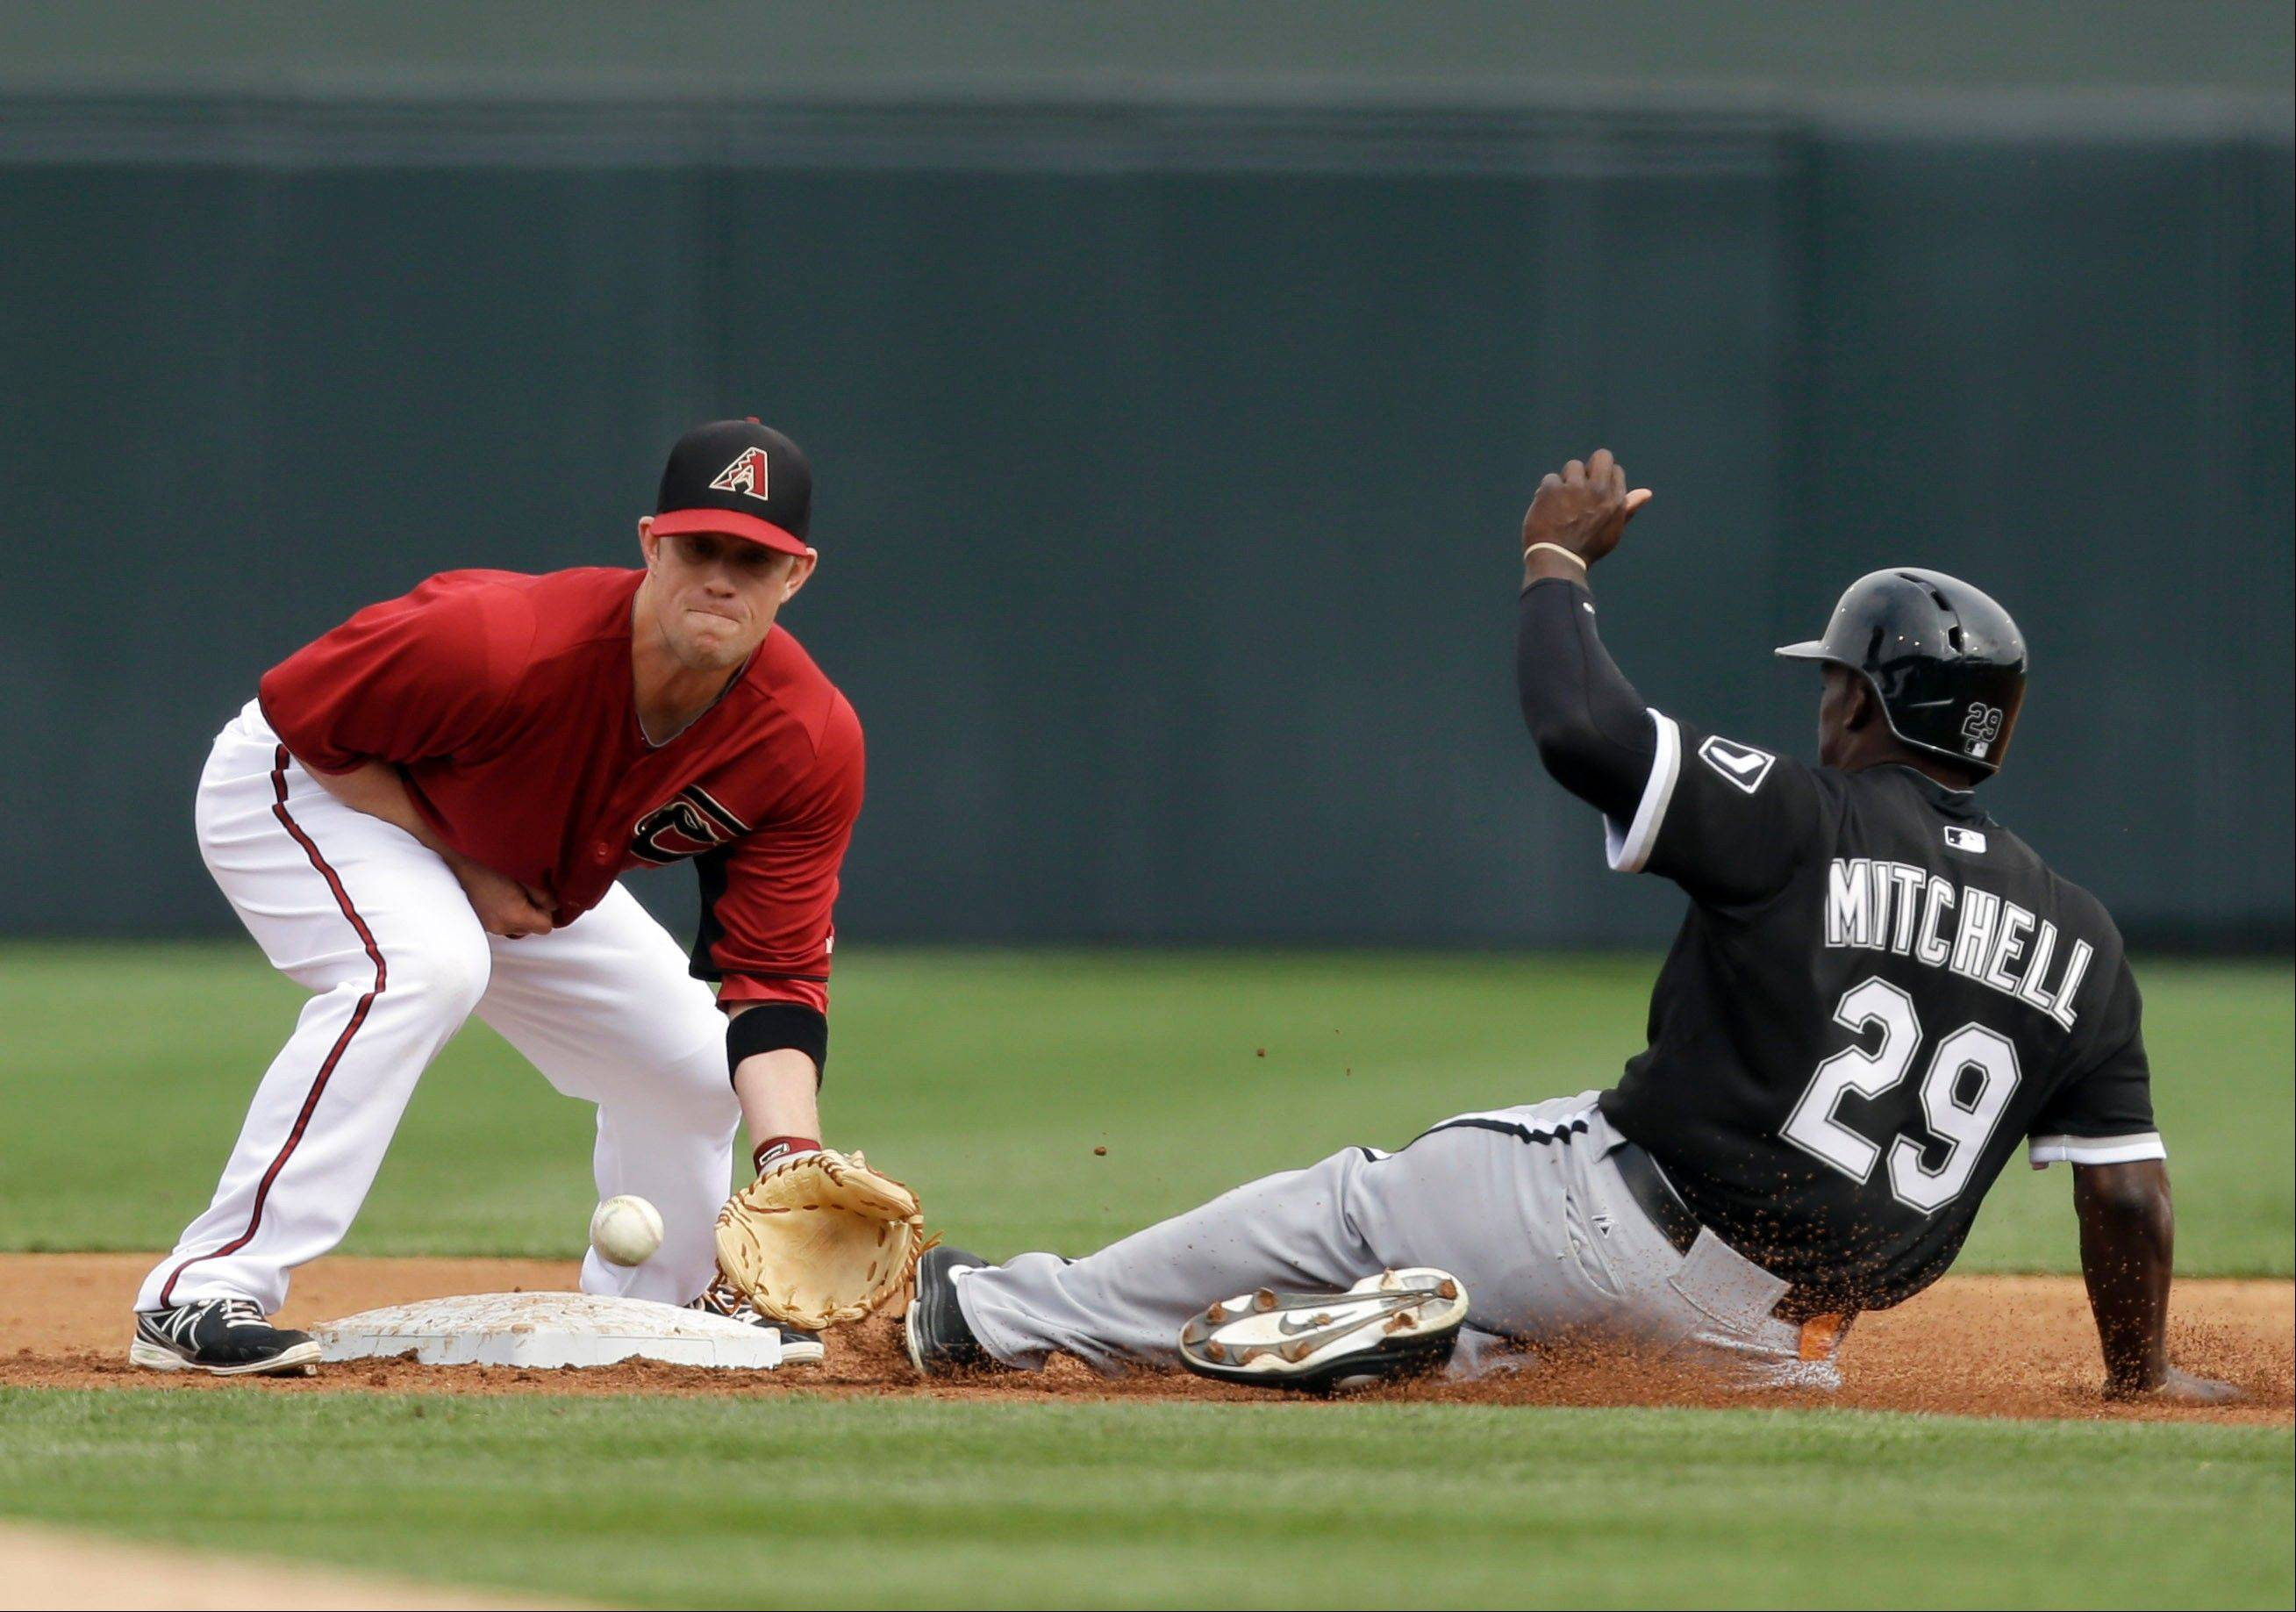 Jared Mitchell (29) of the White Sox had a chance to flash his speed and power in spring training.